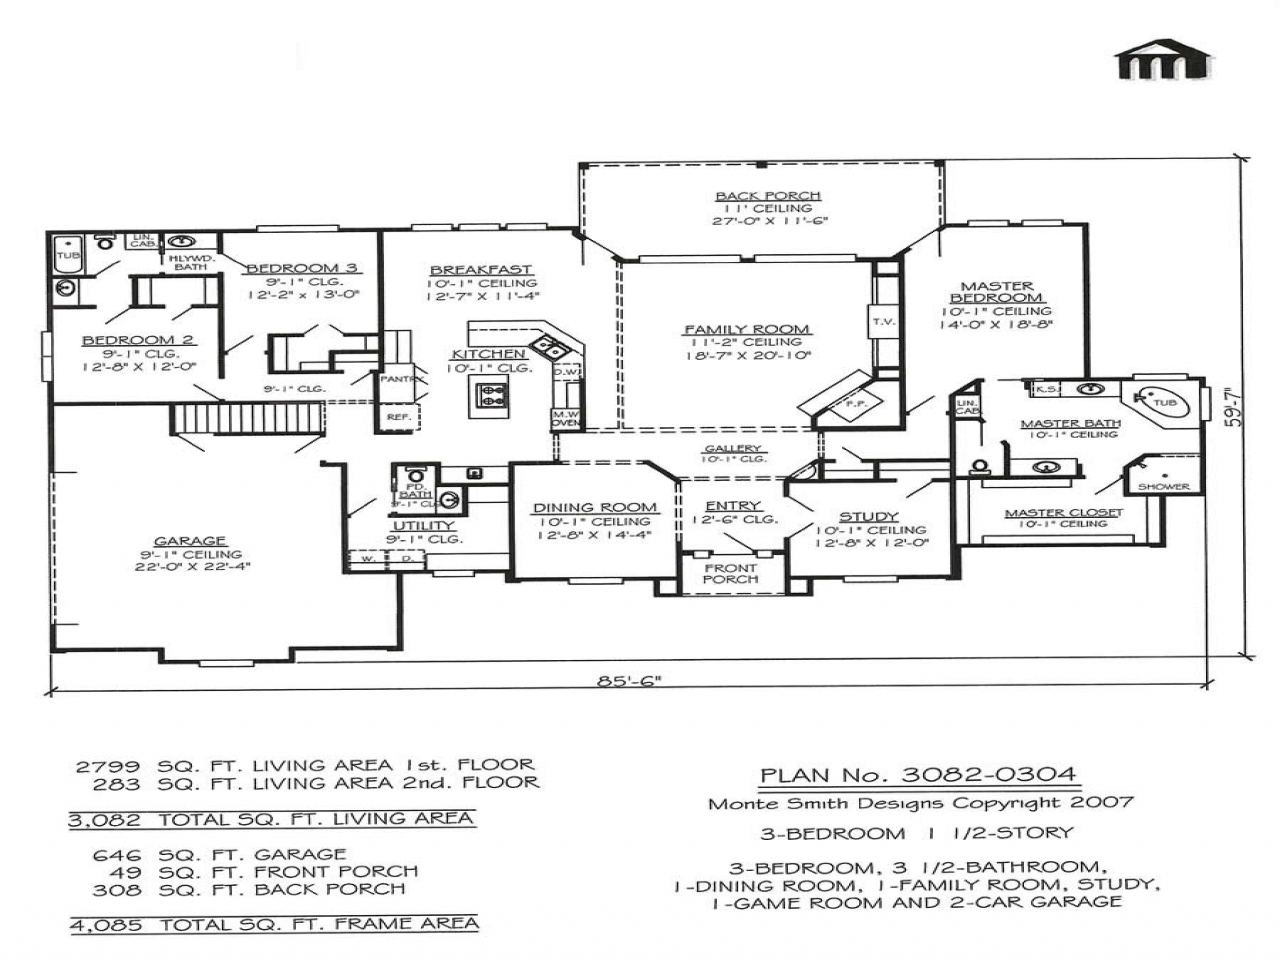 3 bedroom 2 story home floor plans basement bedrooms for 2 story house plans with basement